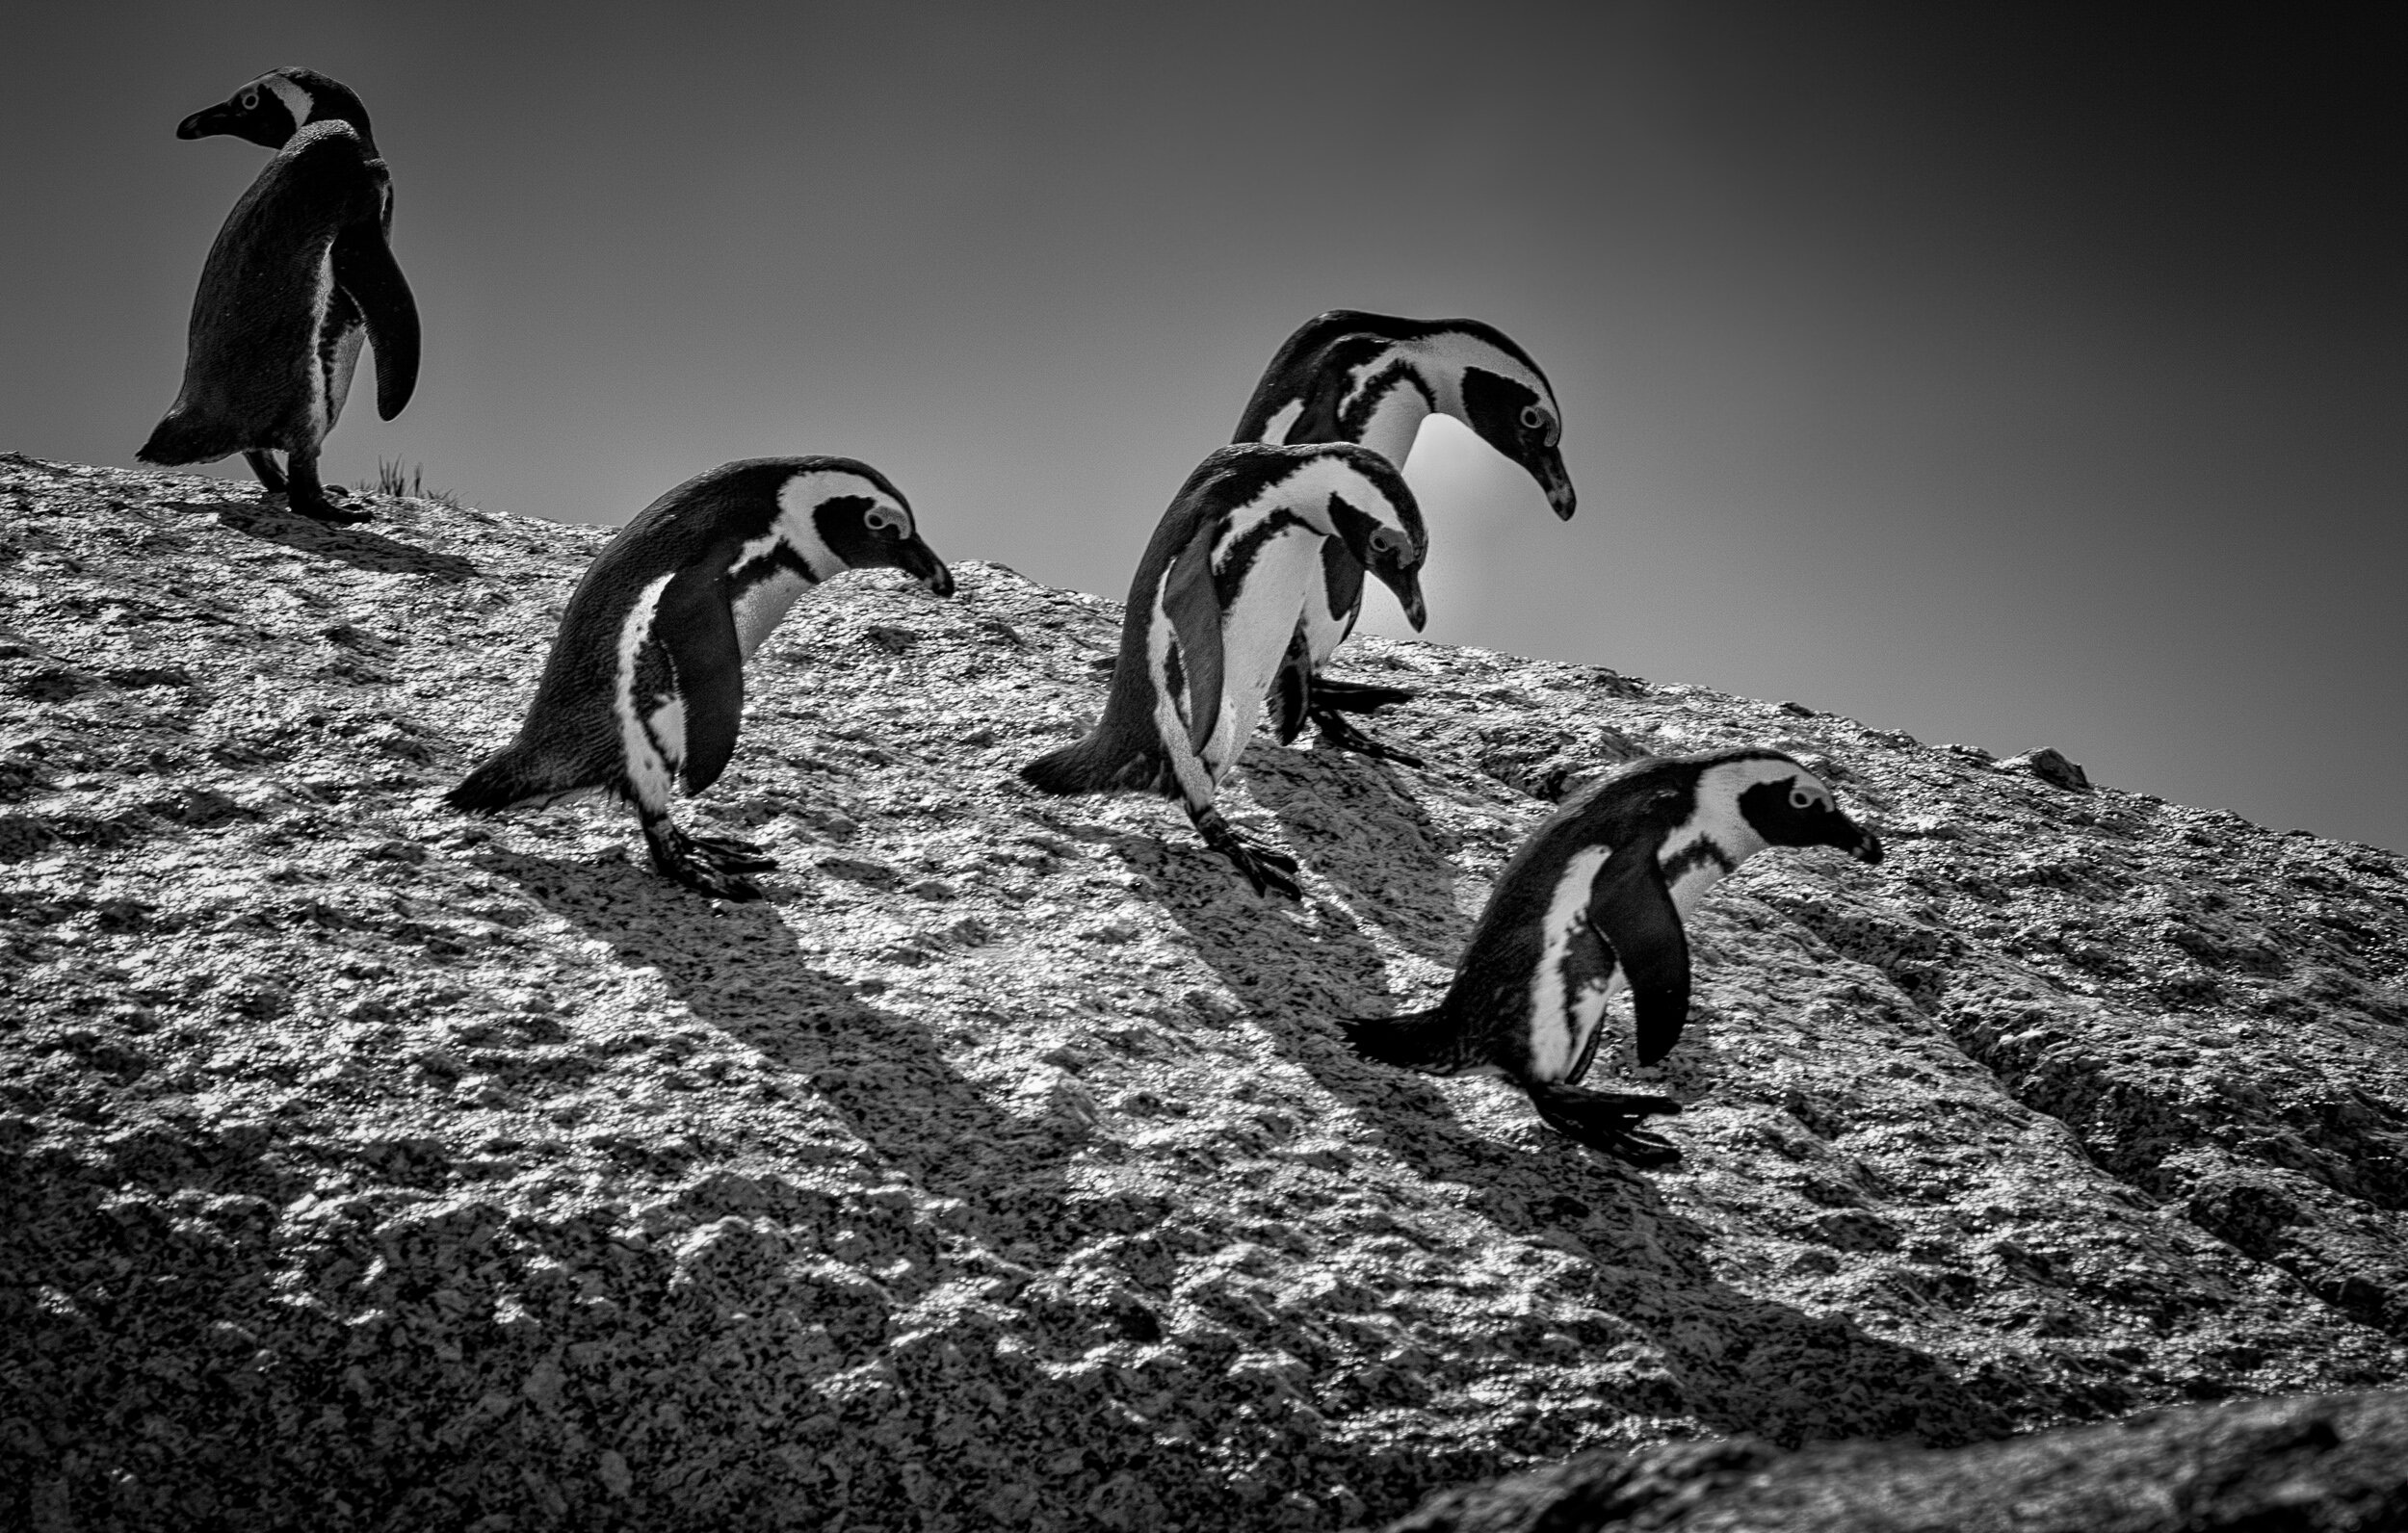 CapePenguins-75-Squarespace2500.jpg